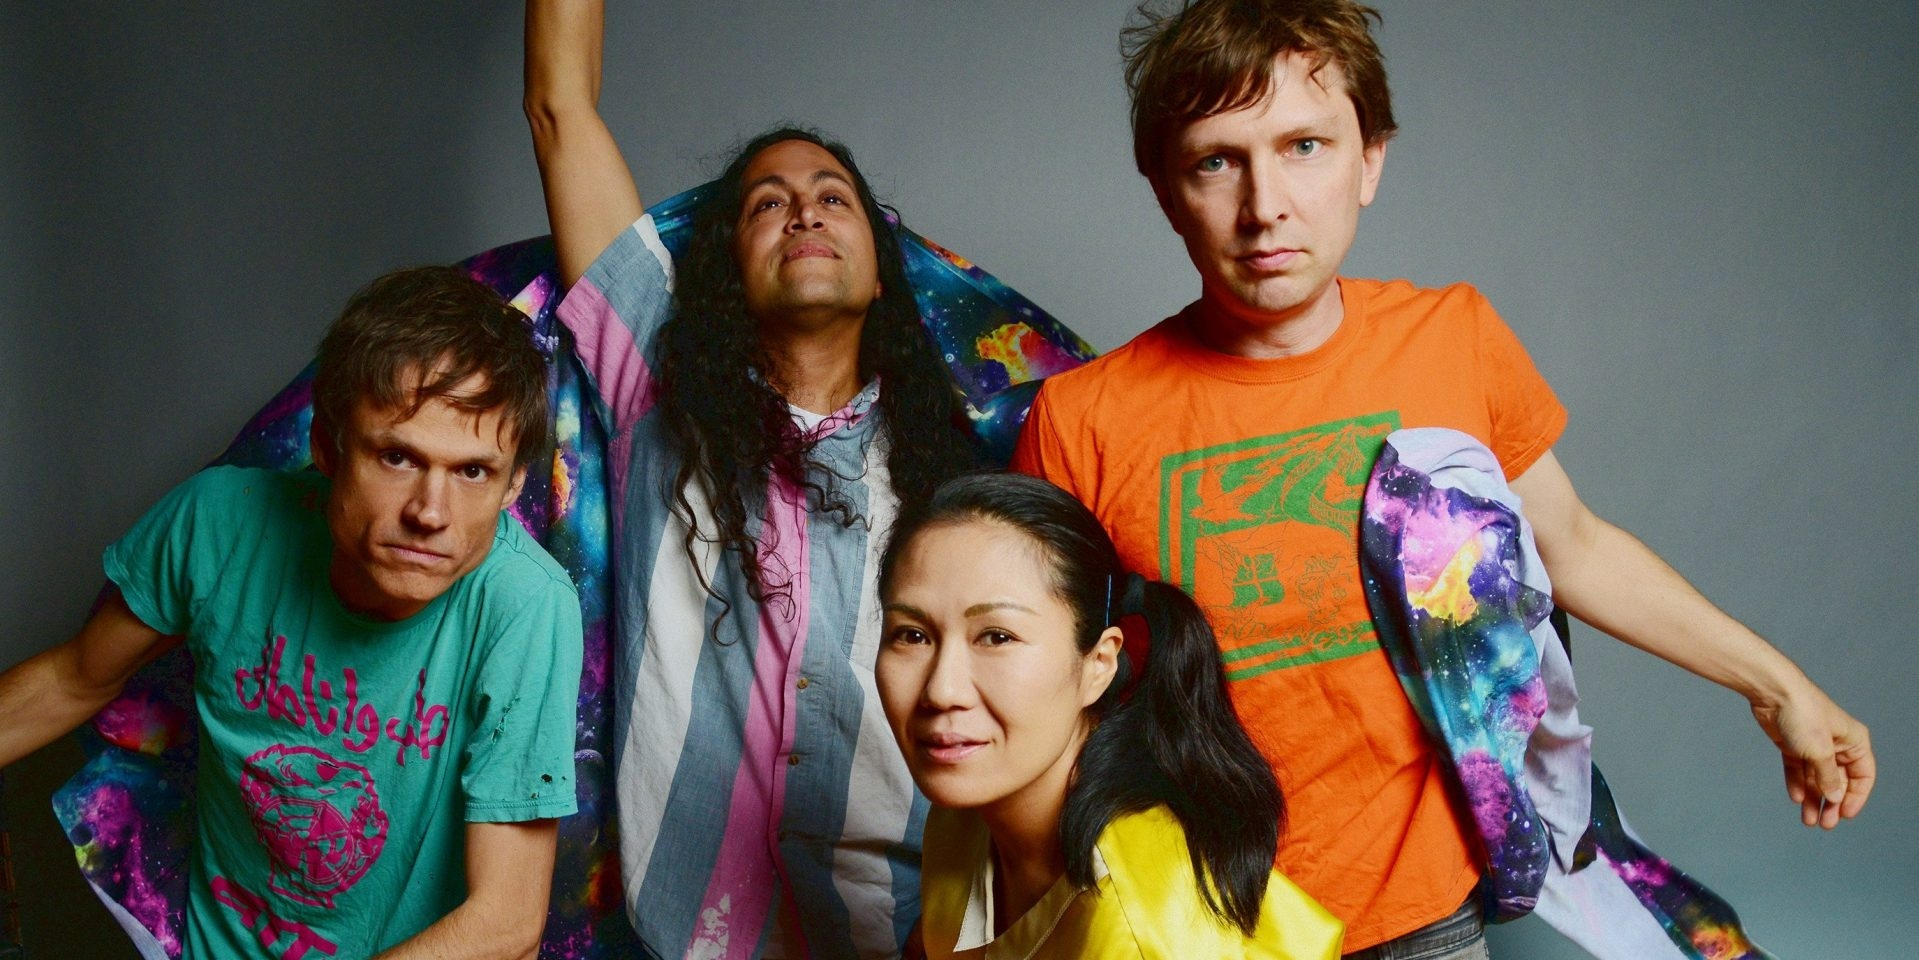 Deerhoof is coming to Manila, here's how to get tickets